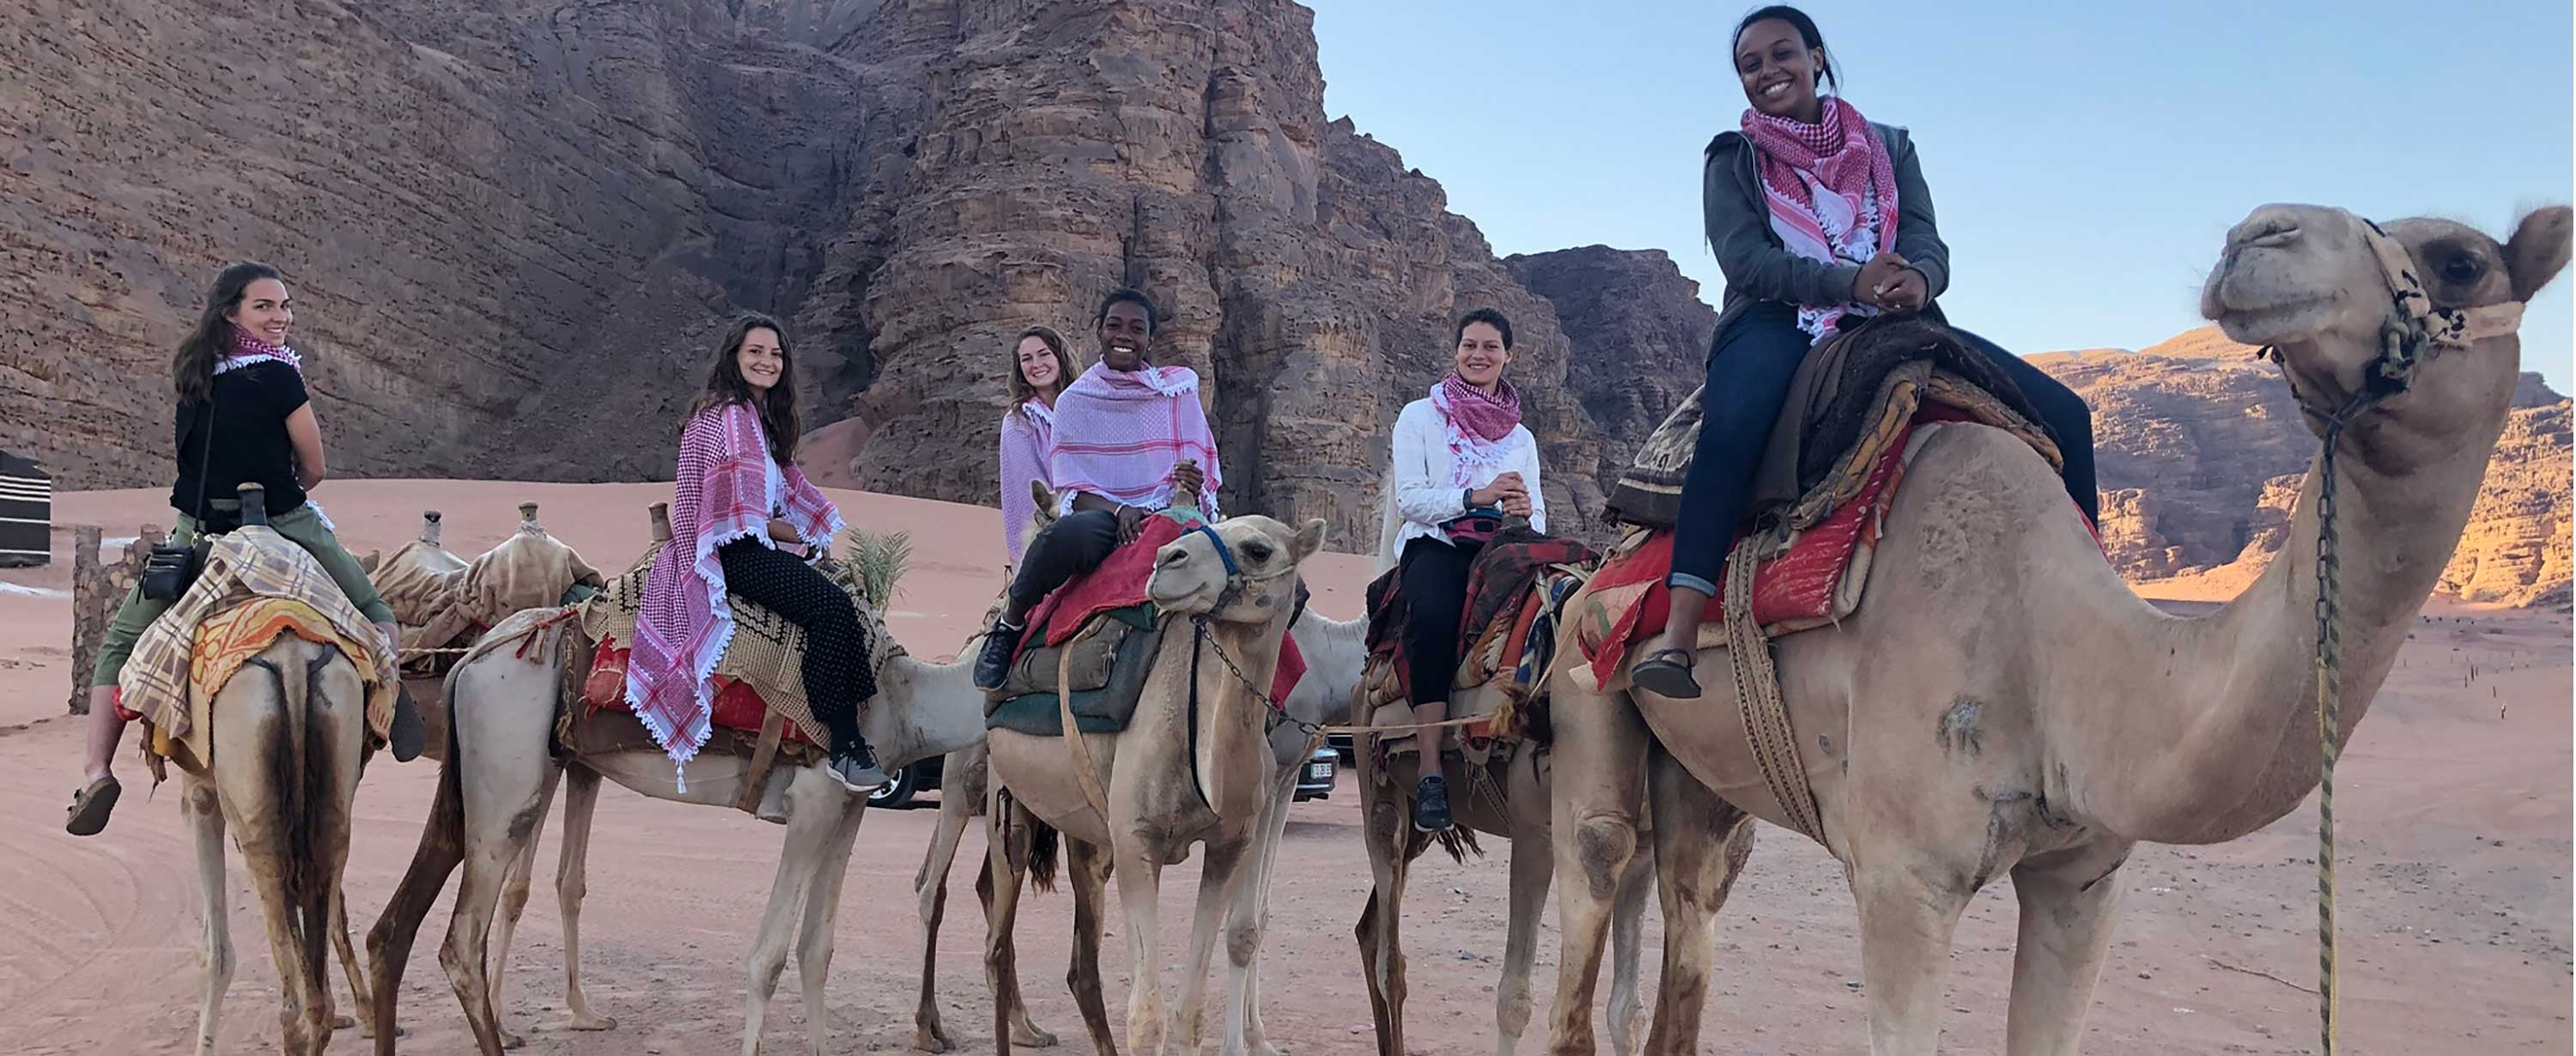 Photo of OT students riding camels in Jordan